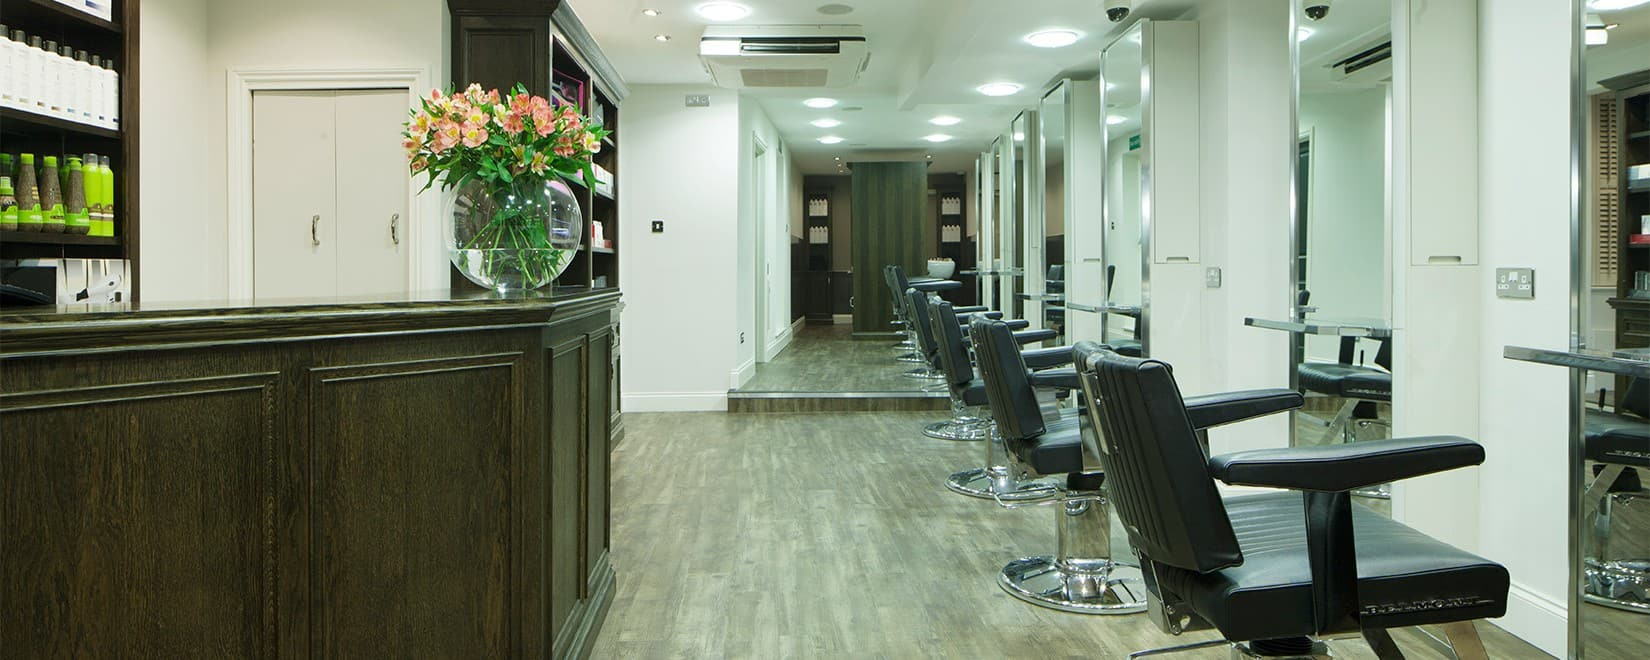 M Salons - Hairdressers Bishops Stortford - Interior Shop